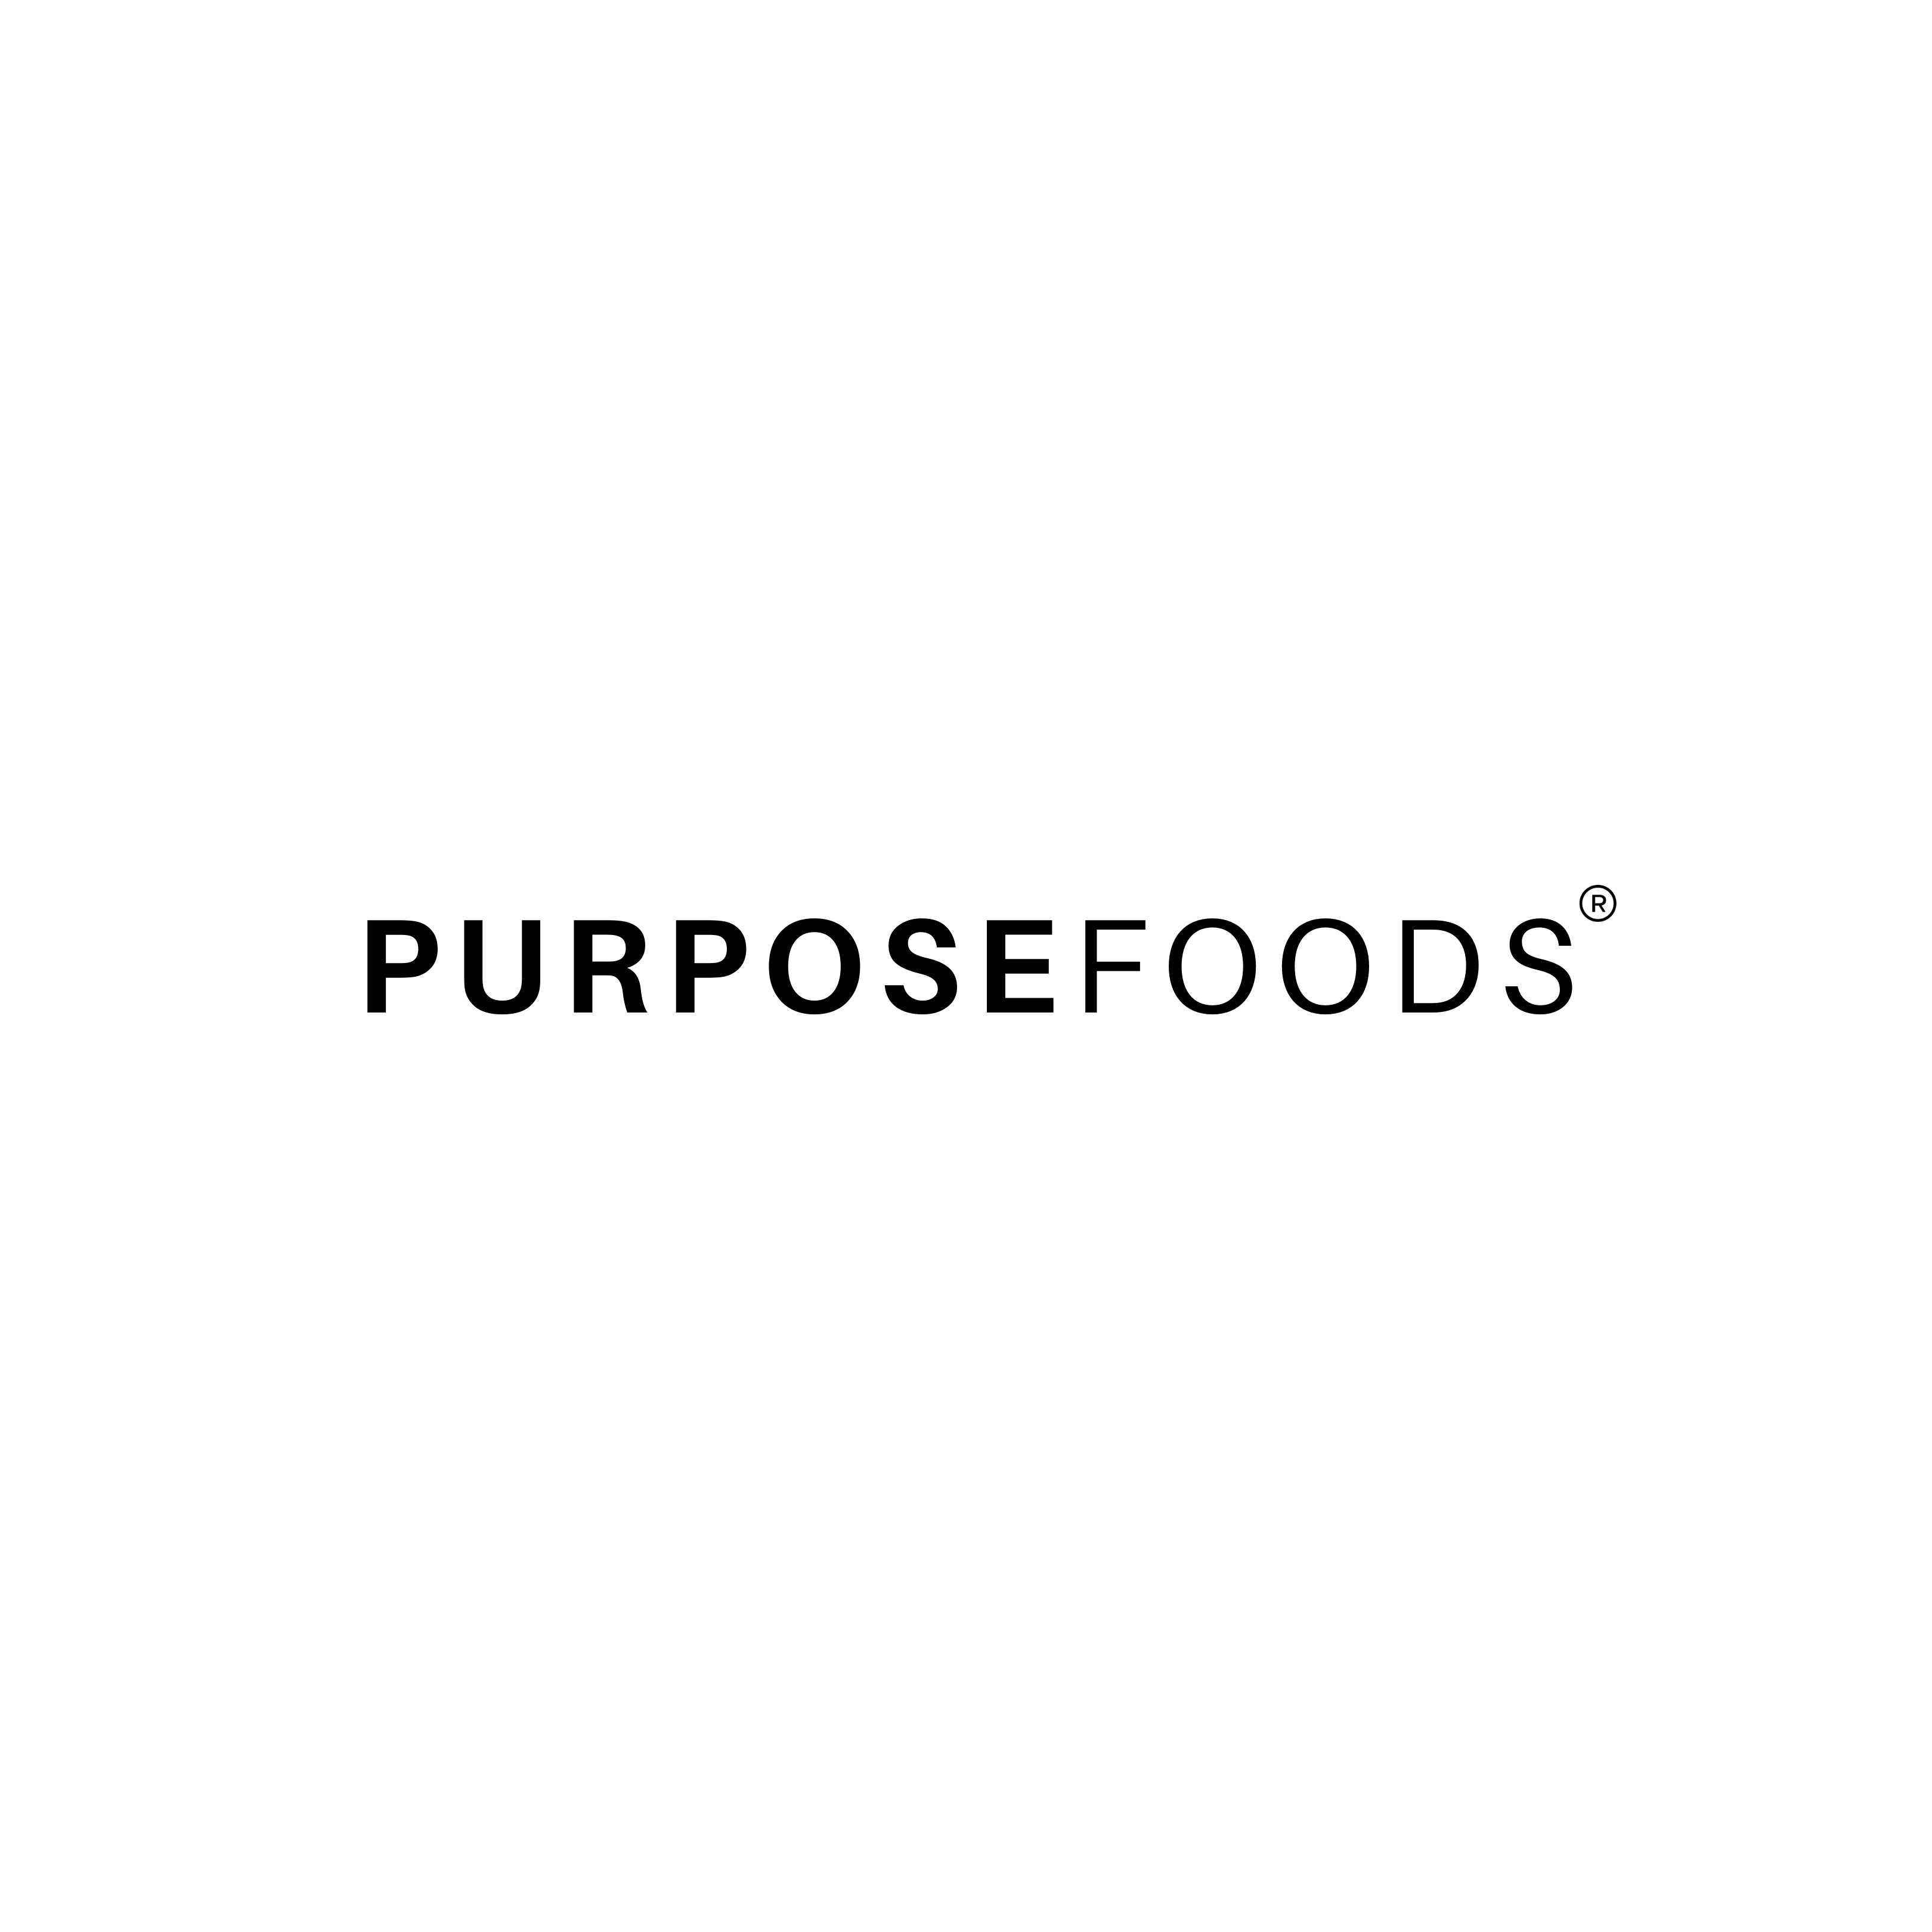 Purpose Foods